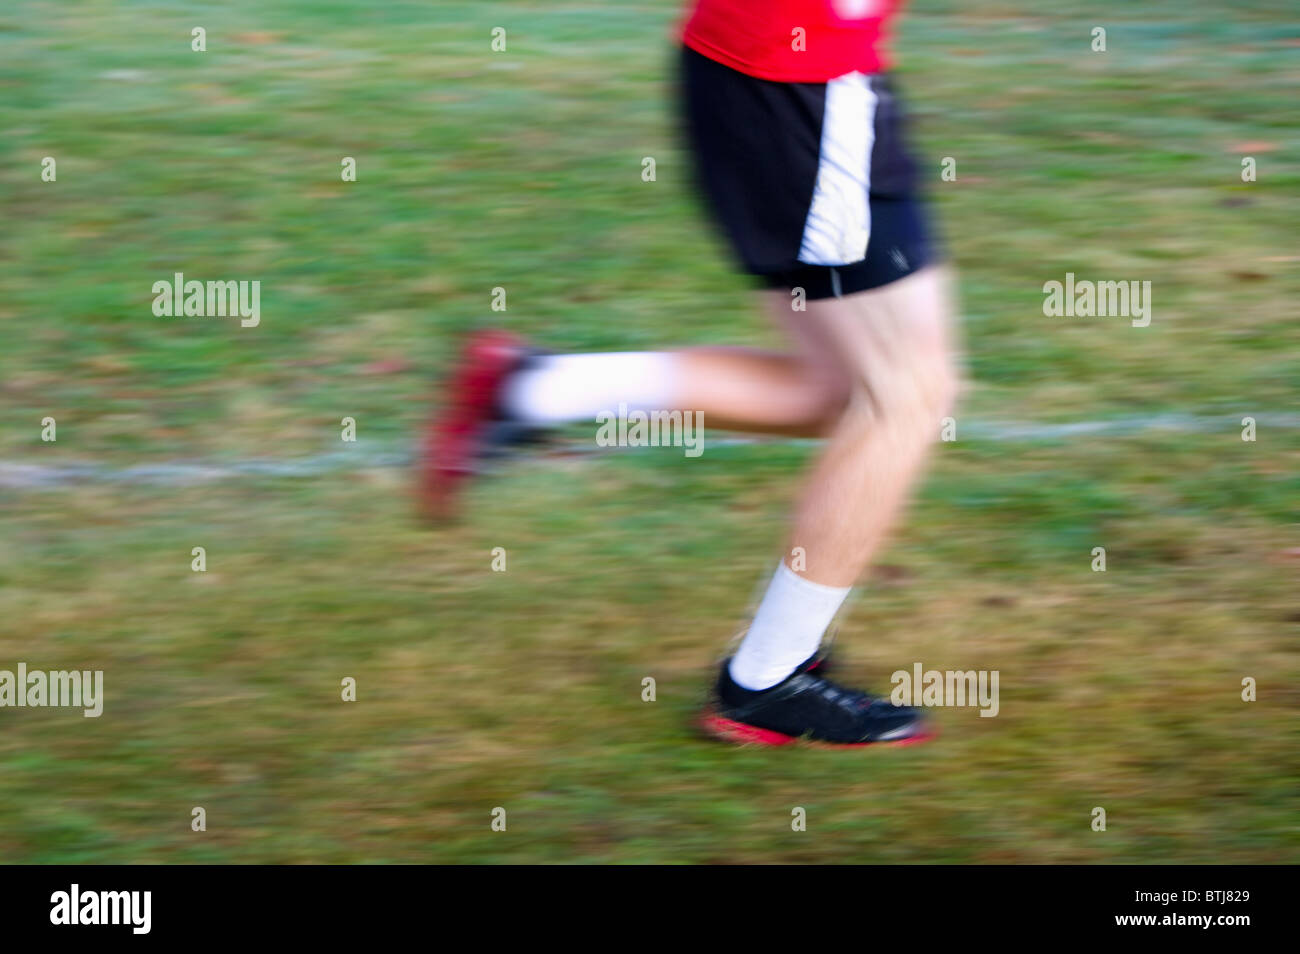 Motion blur of a runner in a cross country race - Stock Image